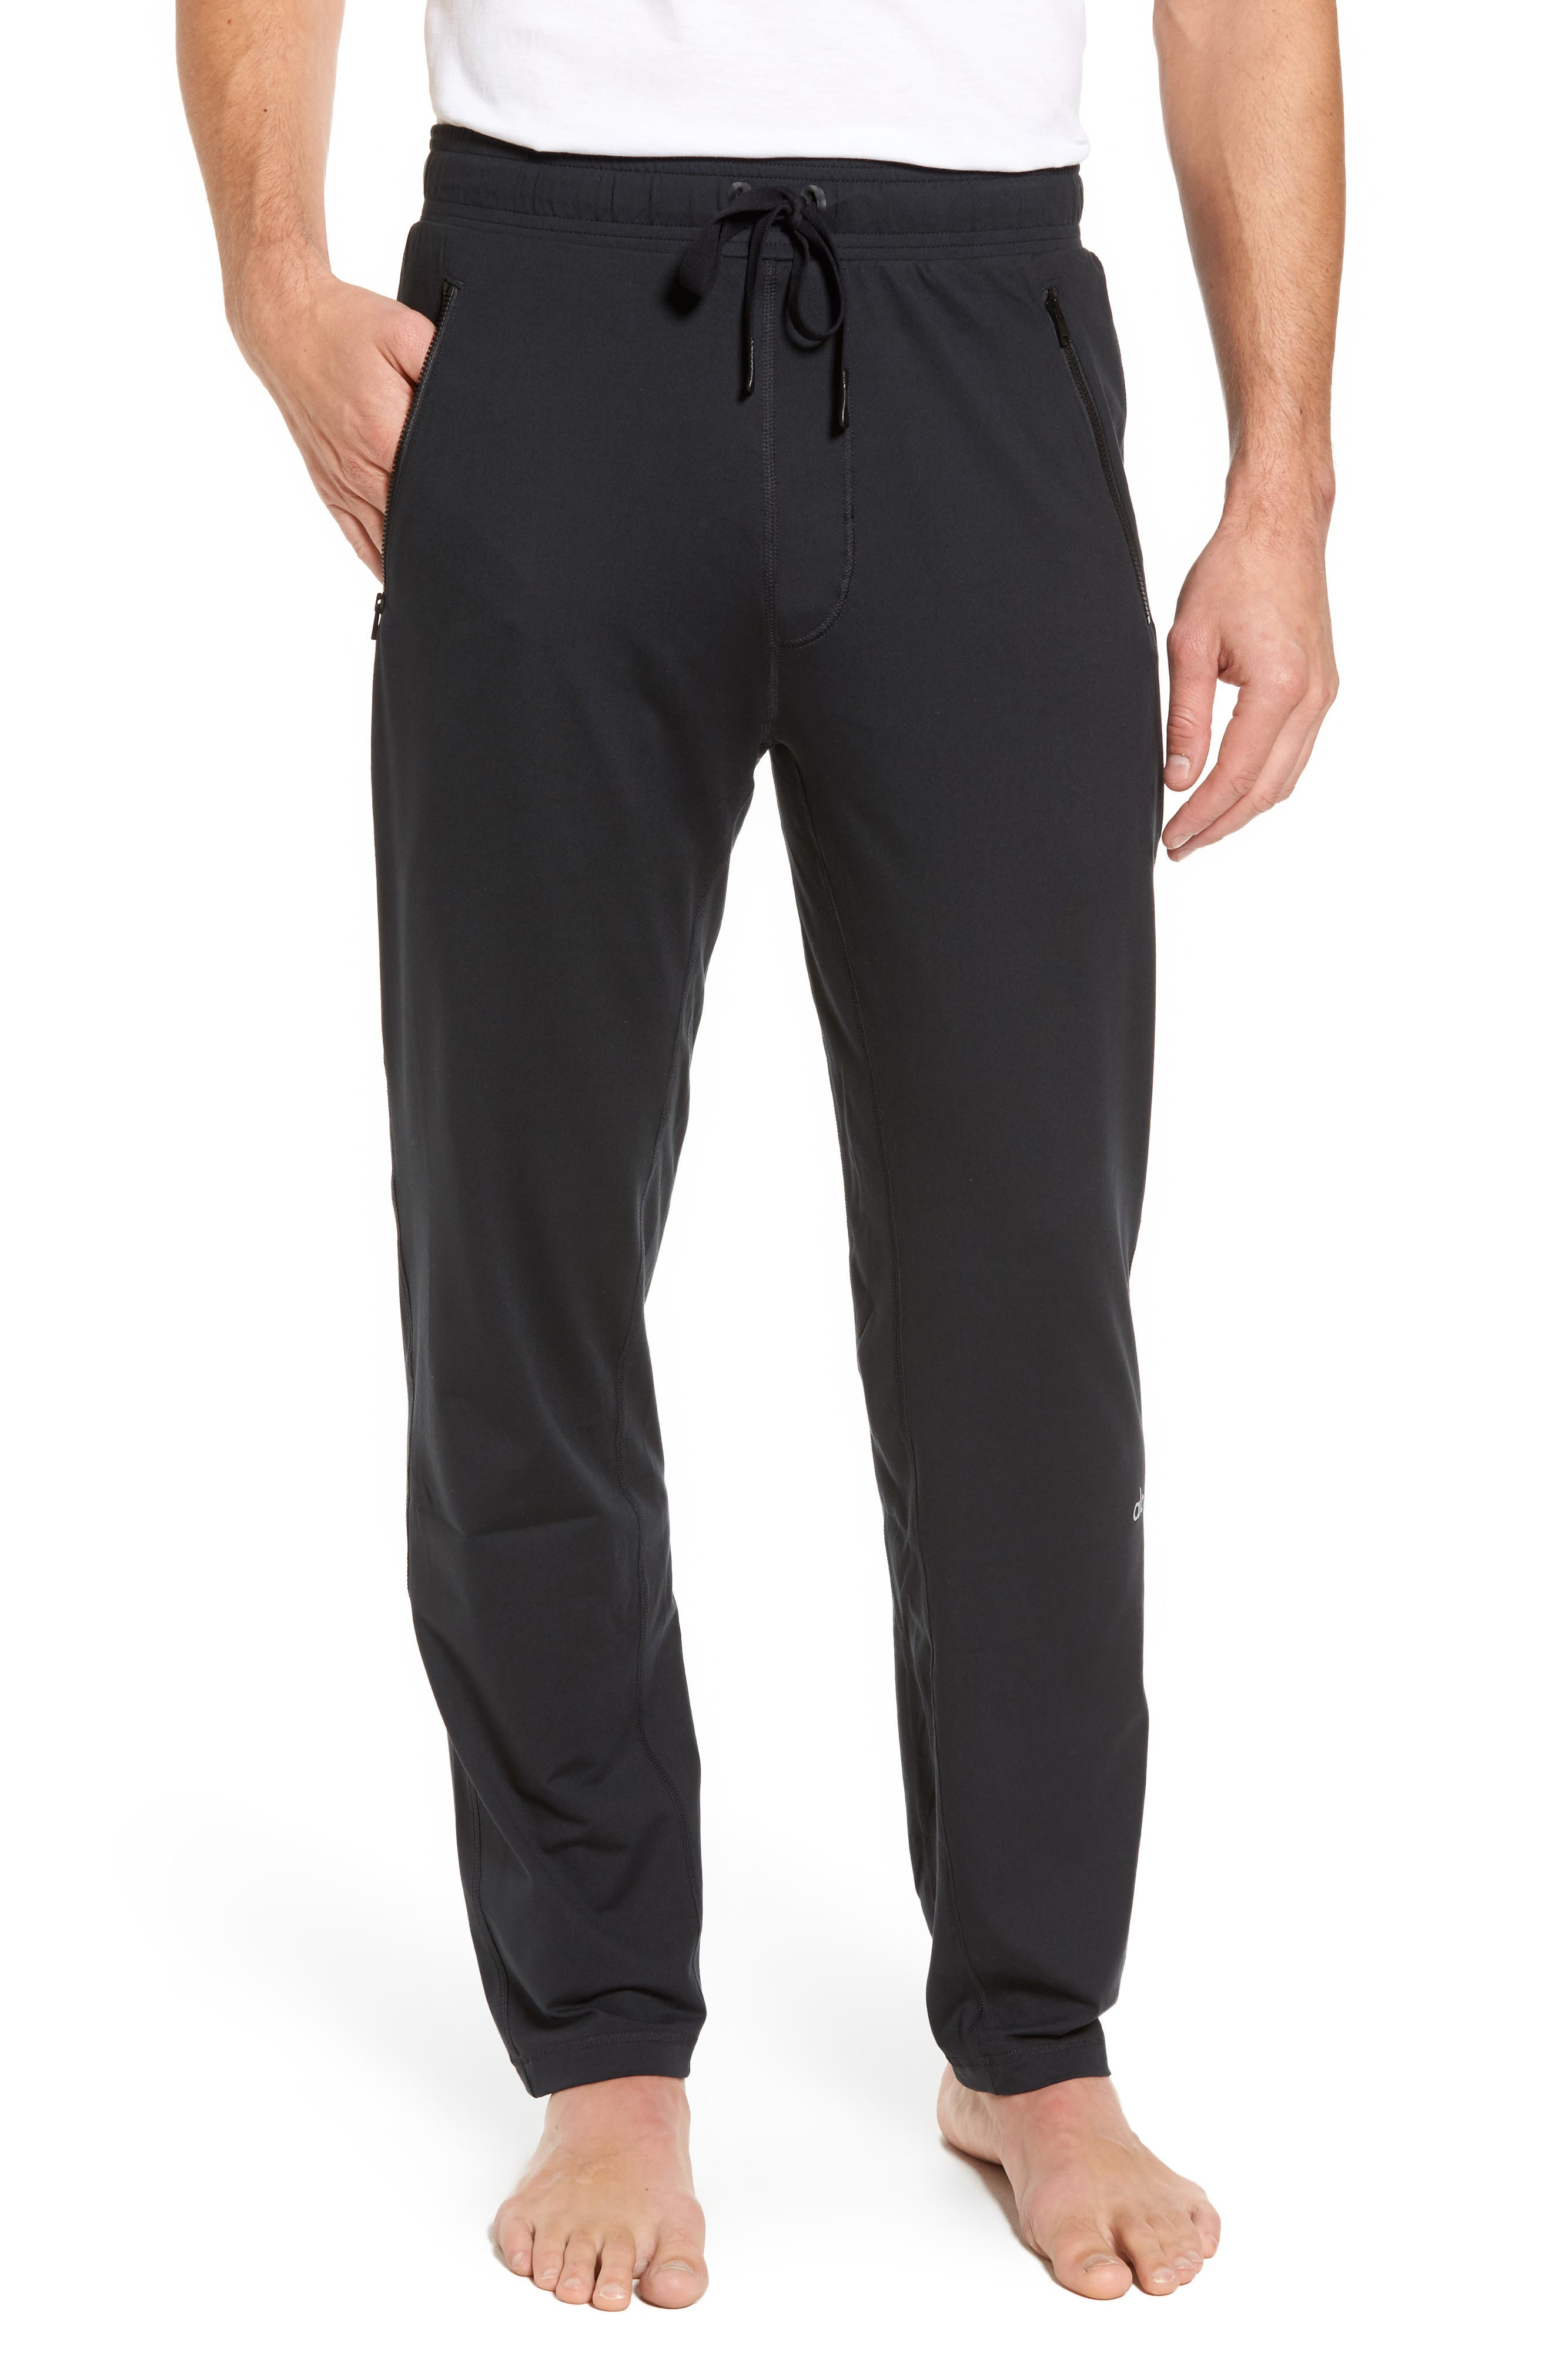 Renew Relaxed Lounge Pants,                         Main,                         color, BLACK